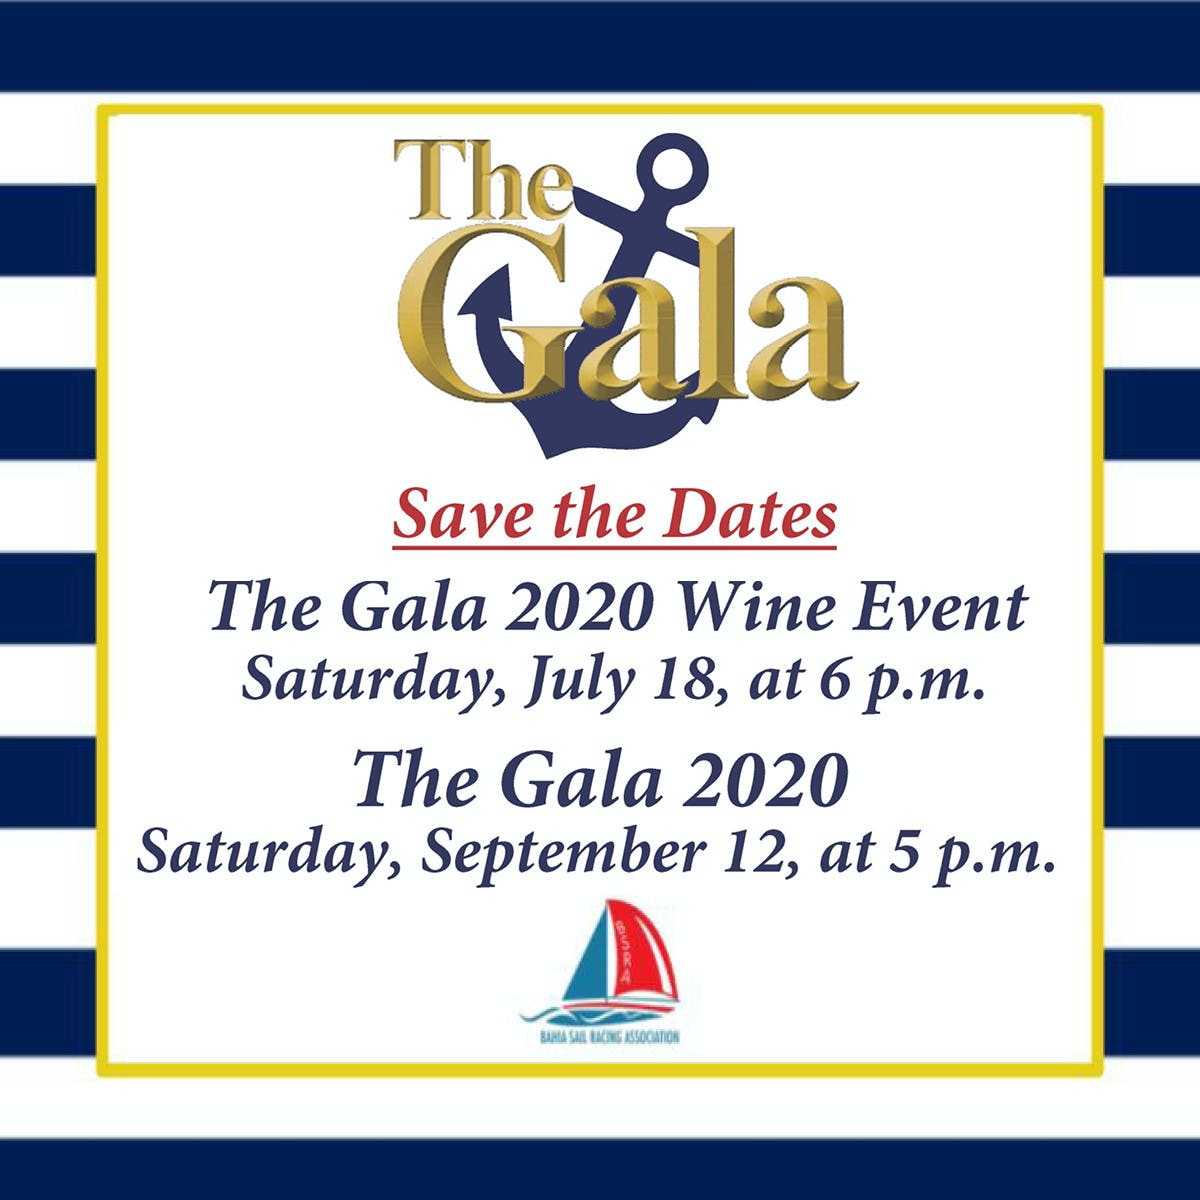 The Gala Wine Event